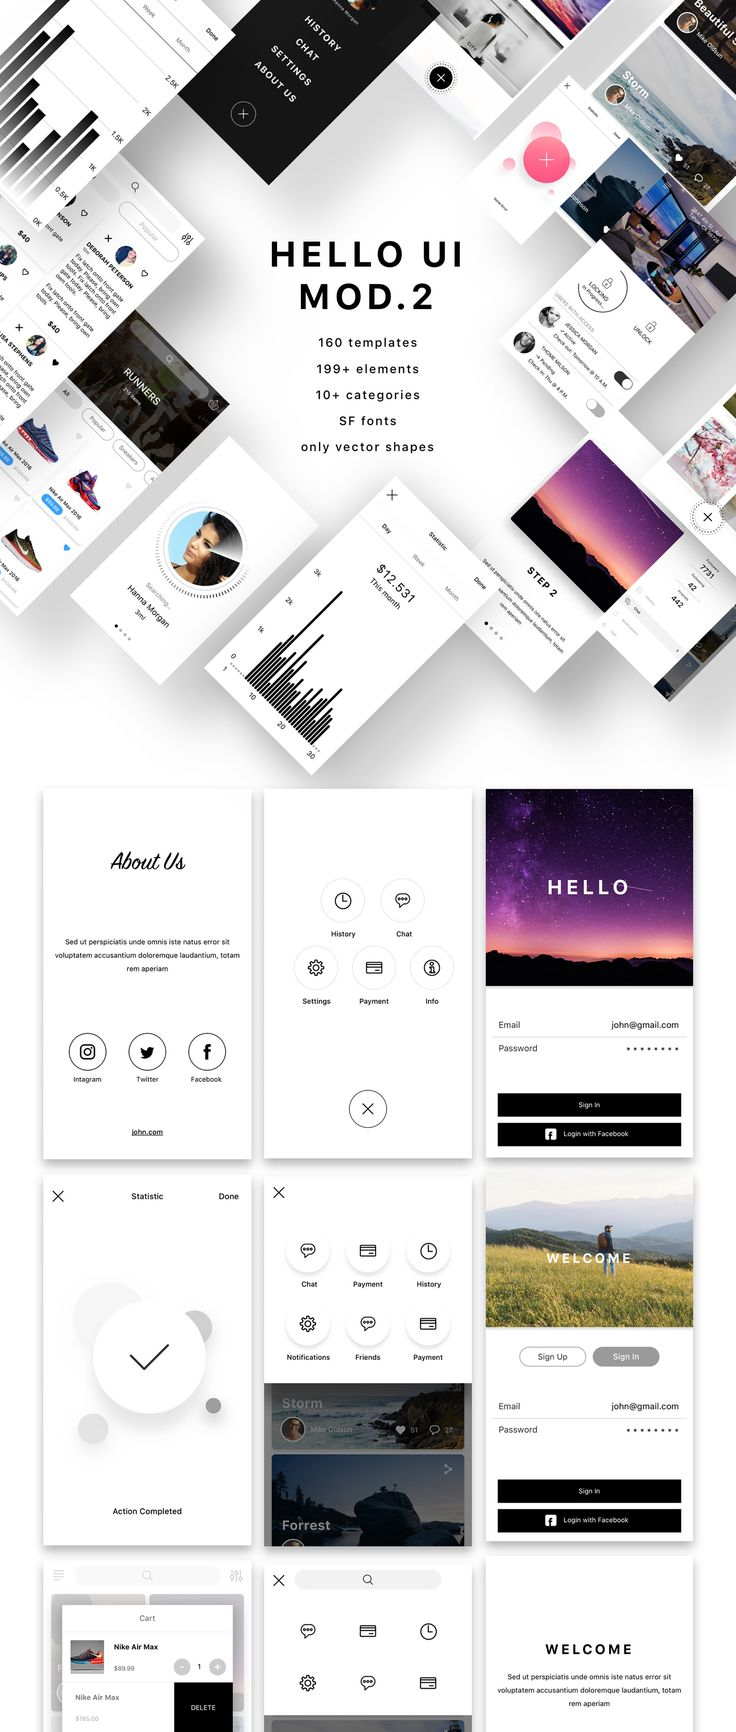 Heeeeey, Hello UI Kit Mod. 2! This mobile UI Kit kit includes more than 160…